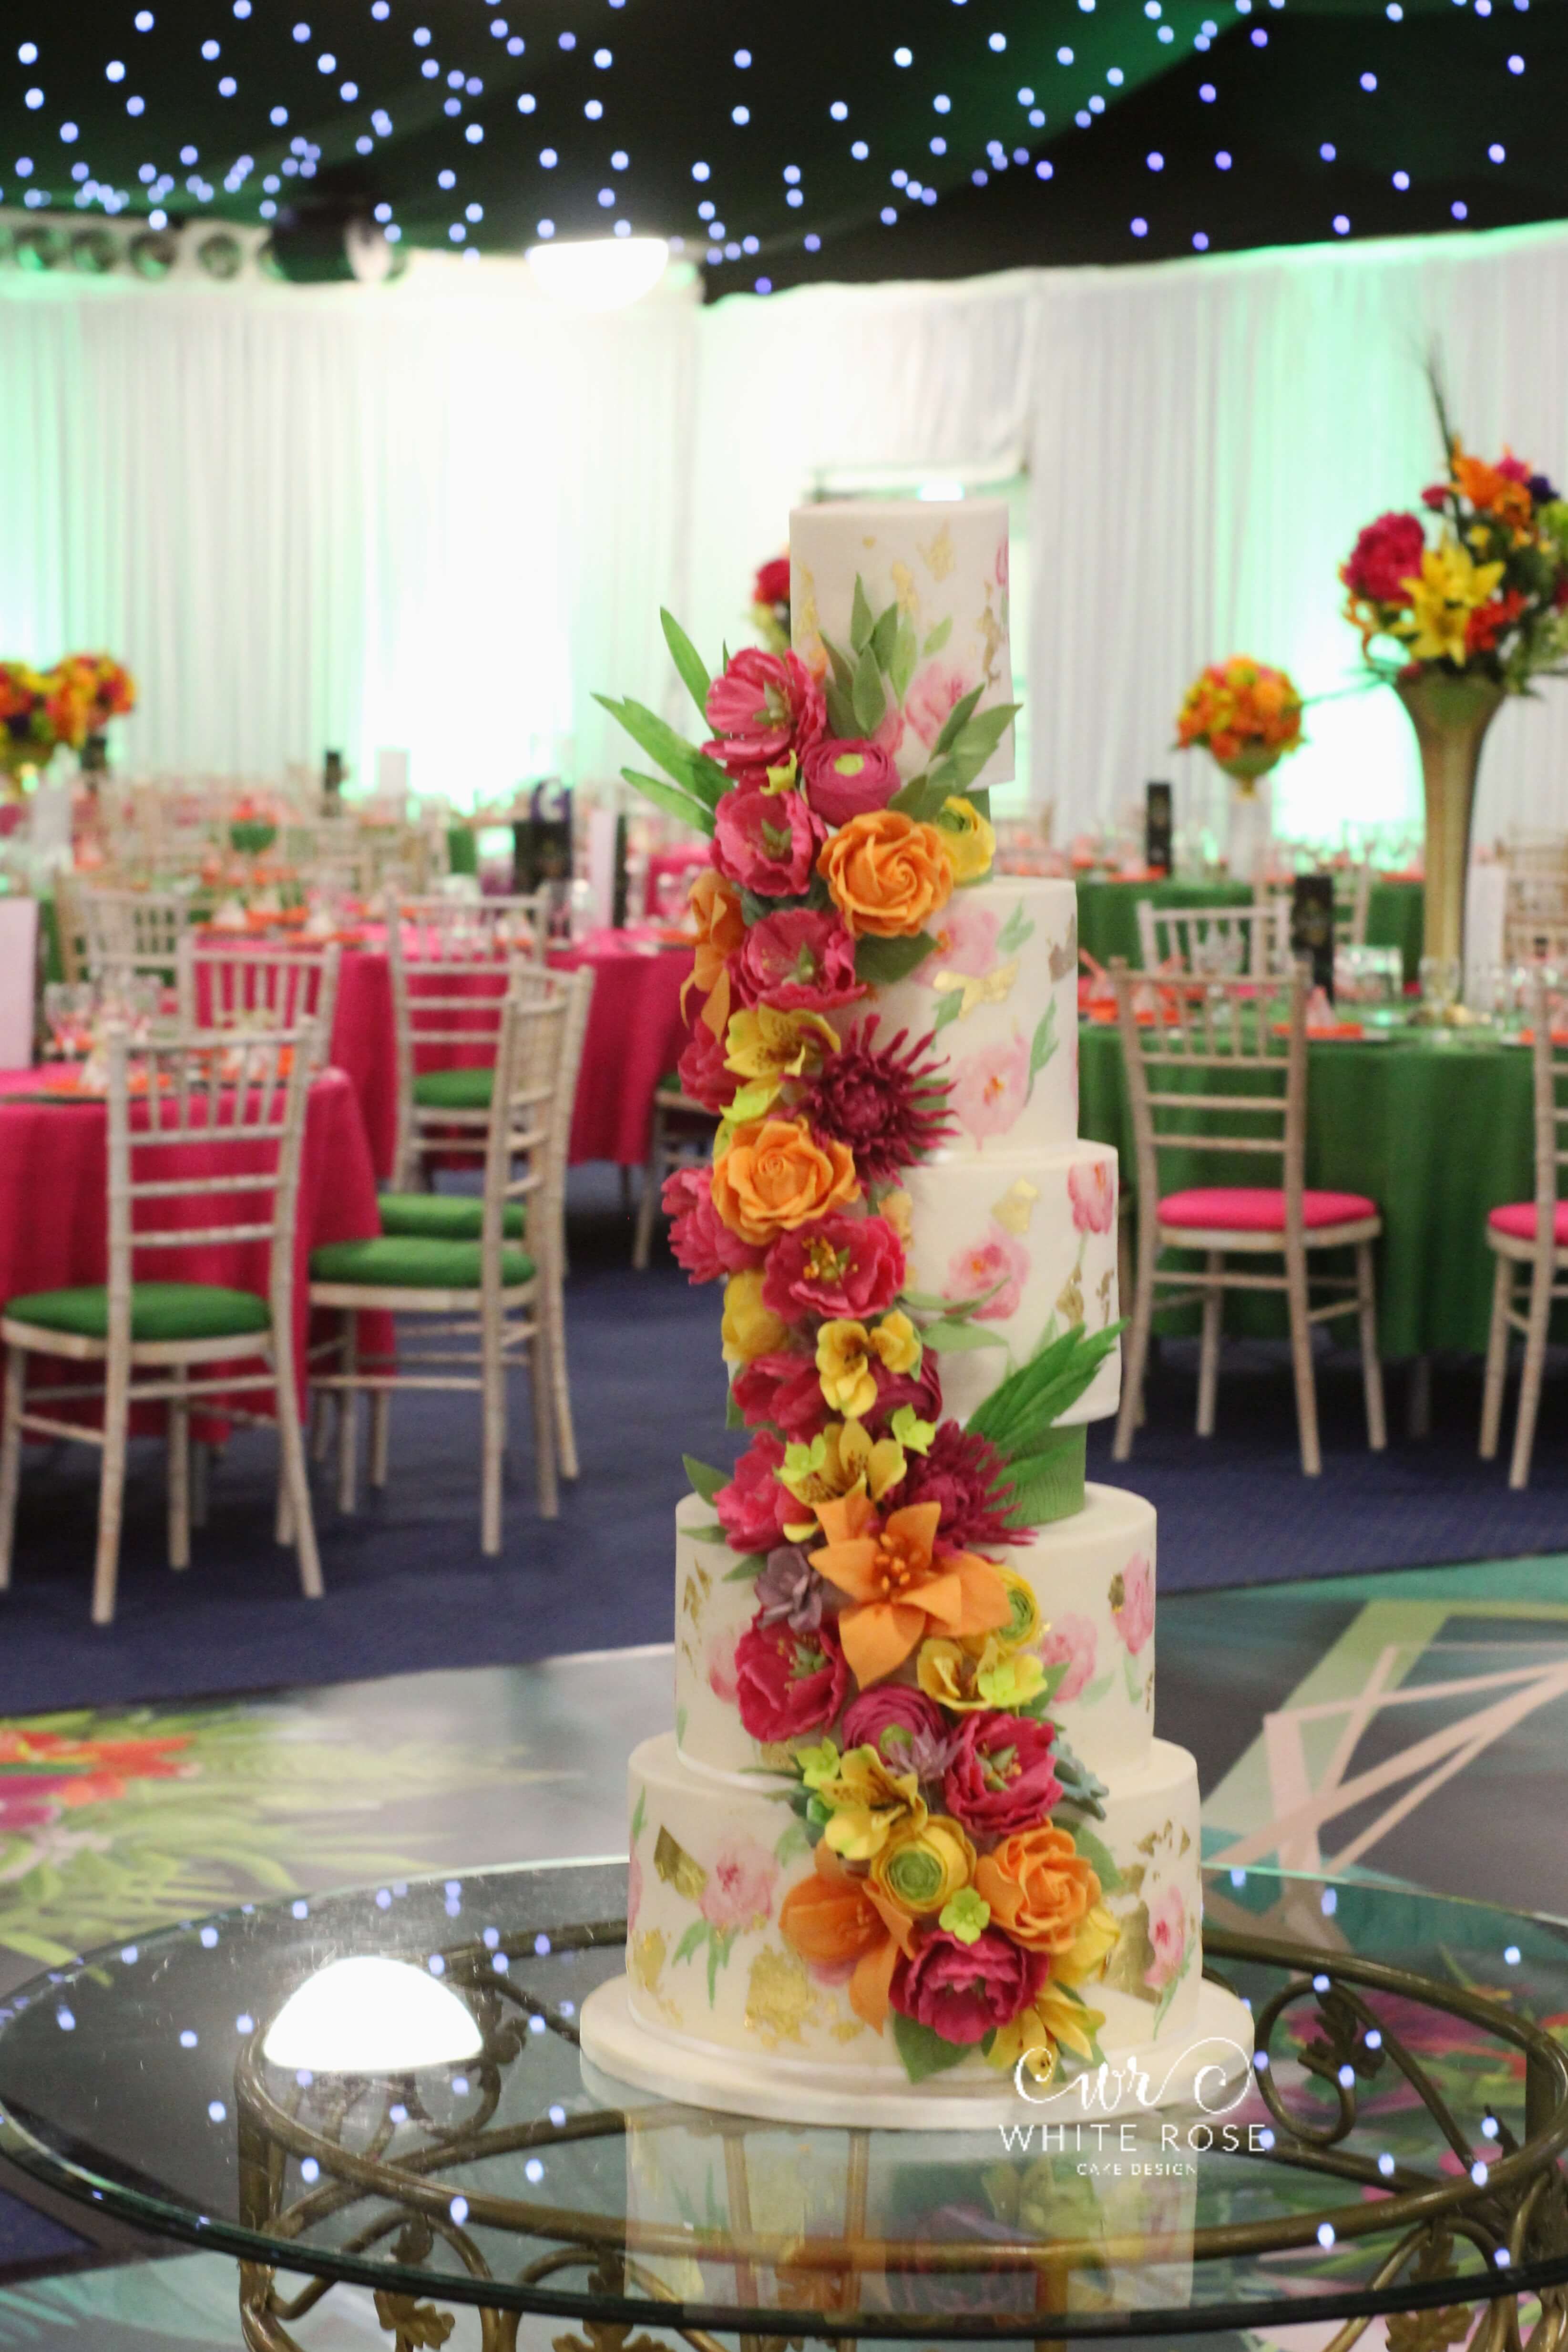 Tropical Floral Cascade Wedding Cake by White Rose Cake Design in Leeds